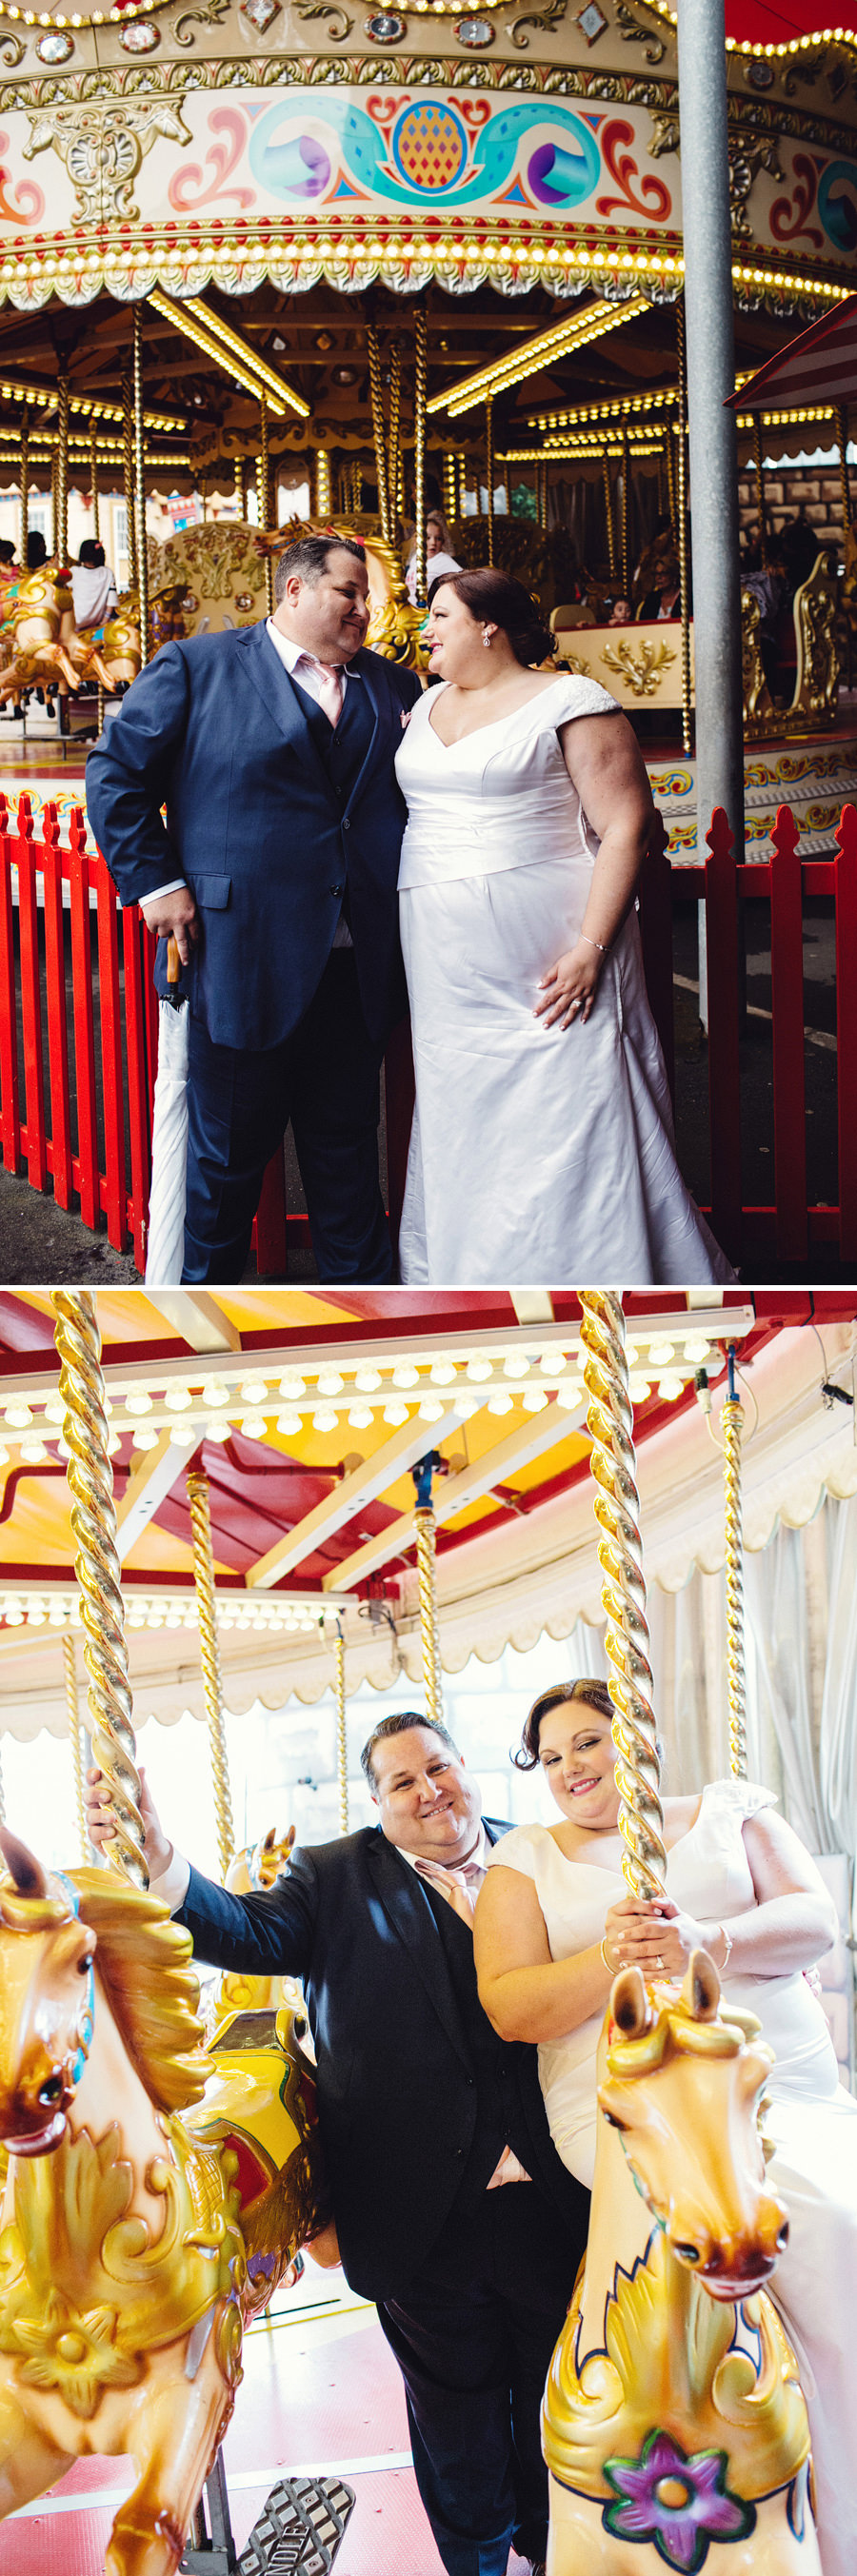 Luna Park Wedding Photographers: Portraits